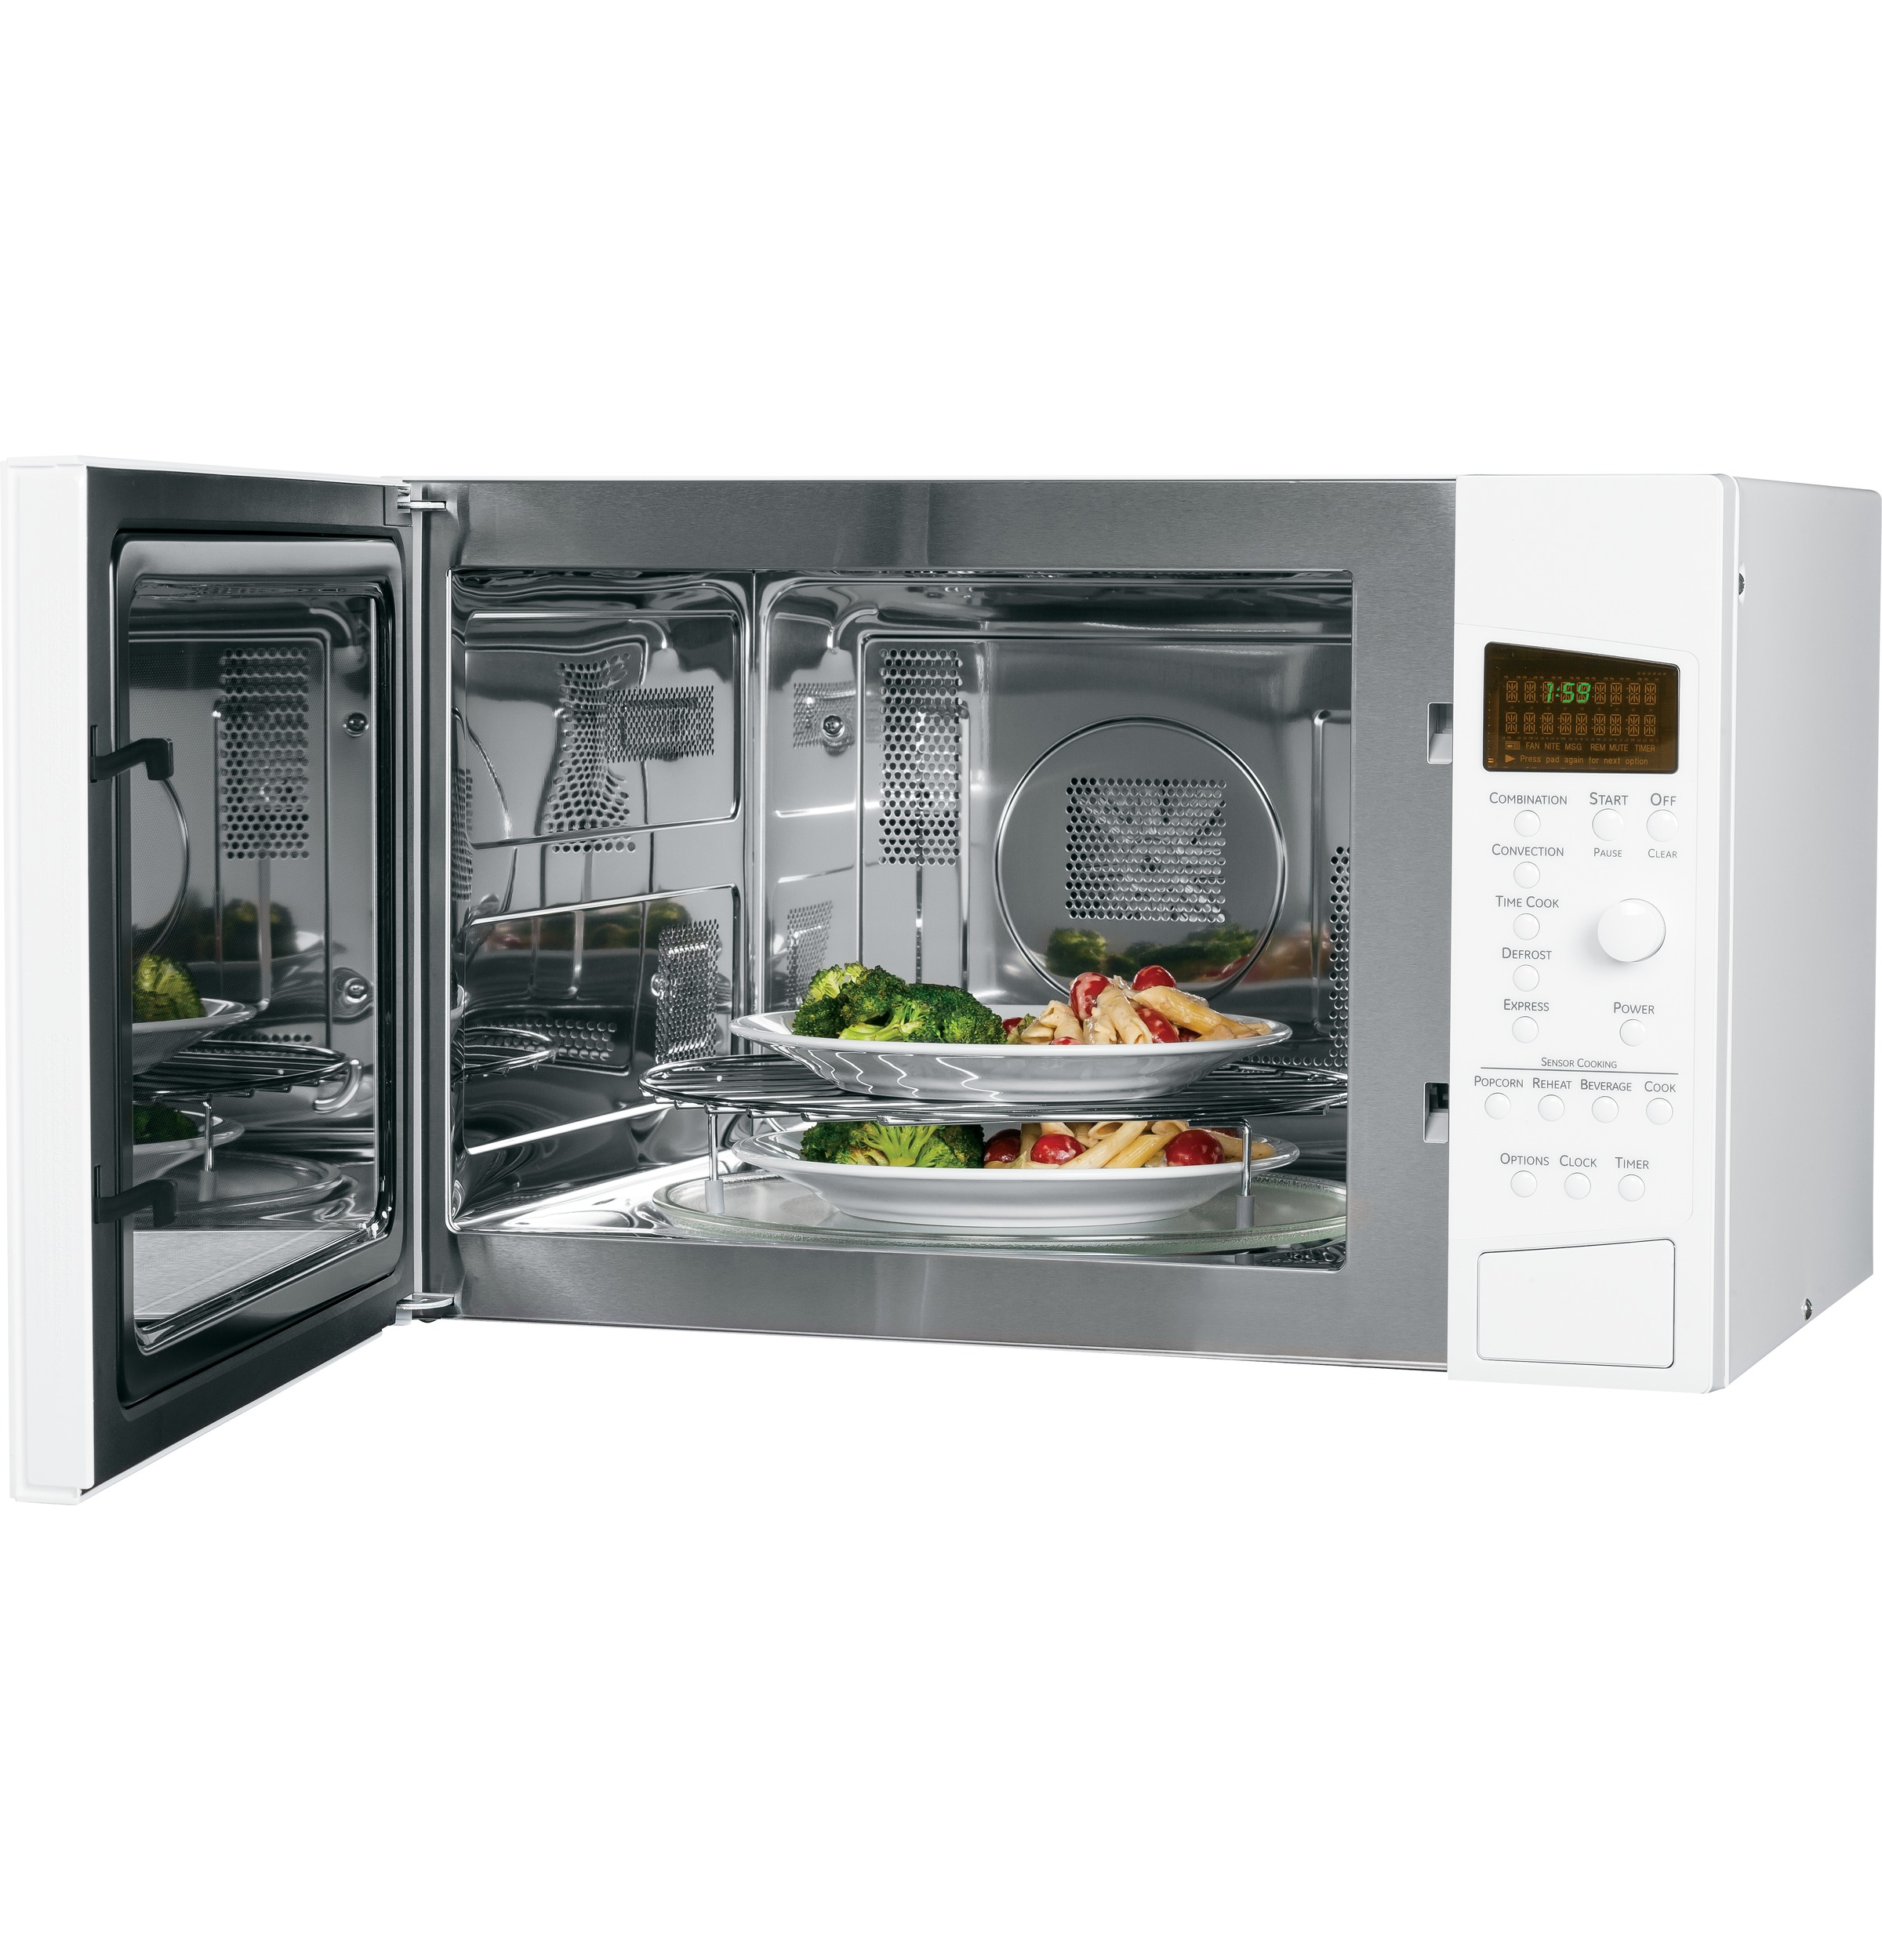 ... Cu. Ft. Countertop Convection/Microwave Oven - The Monogram Collection